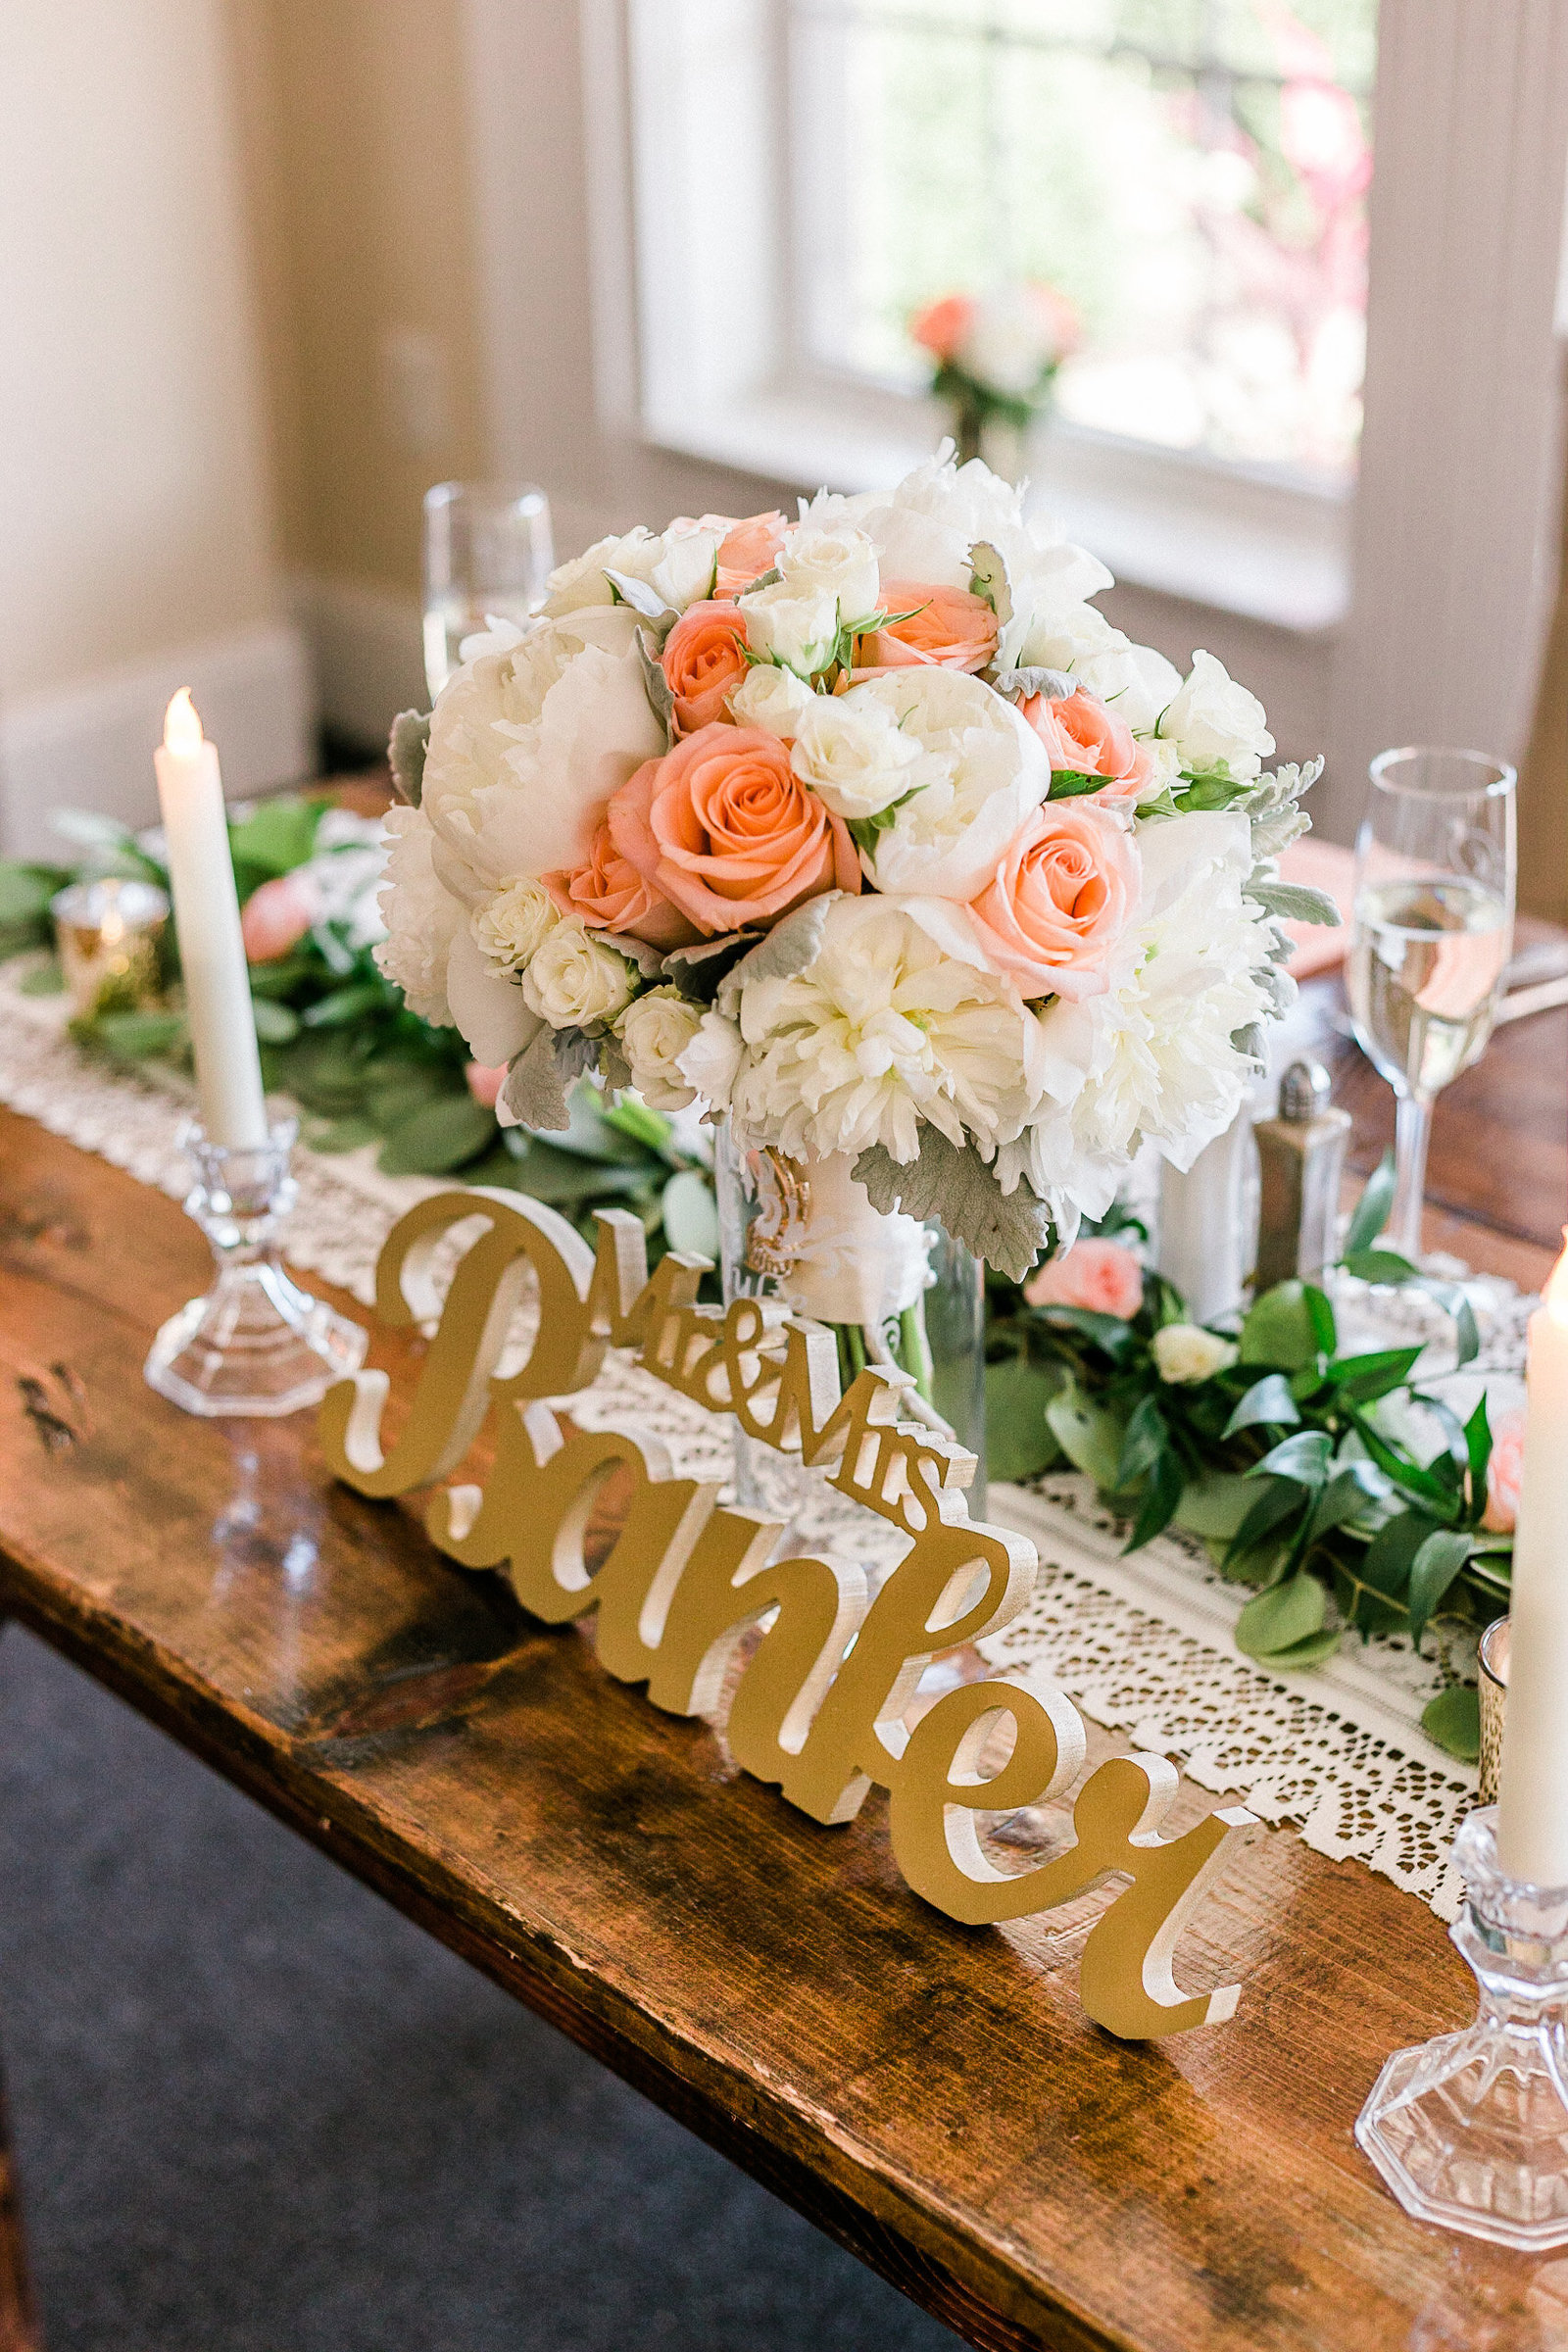 Farm style sweetheart table with lace runner